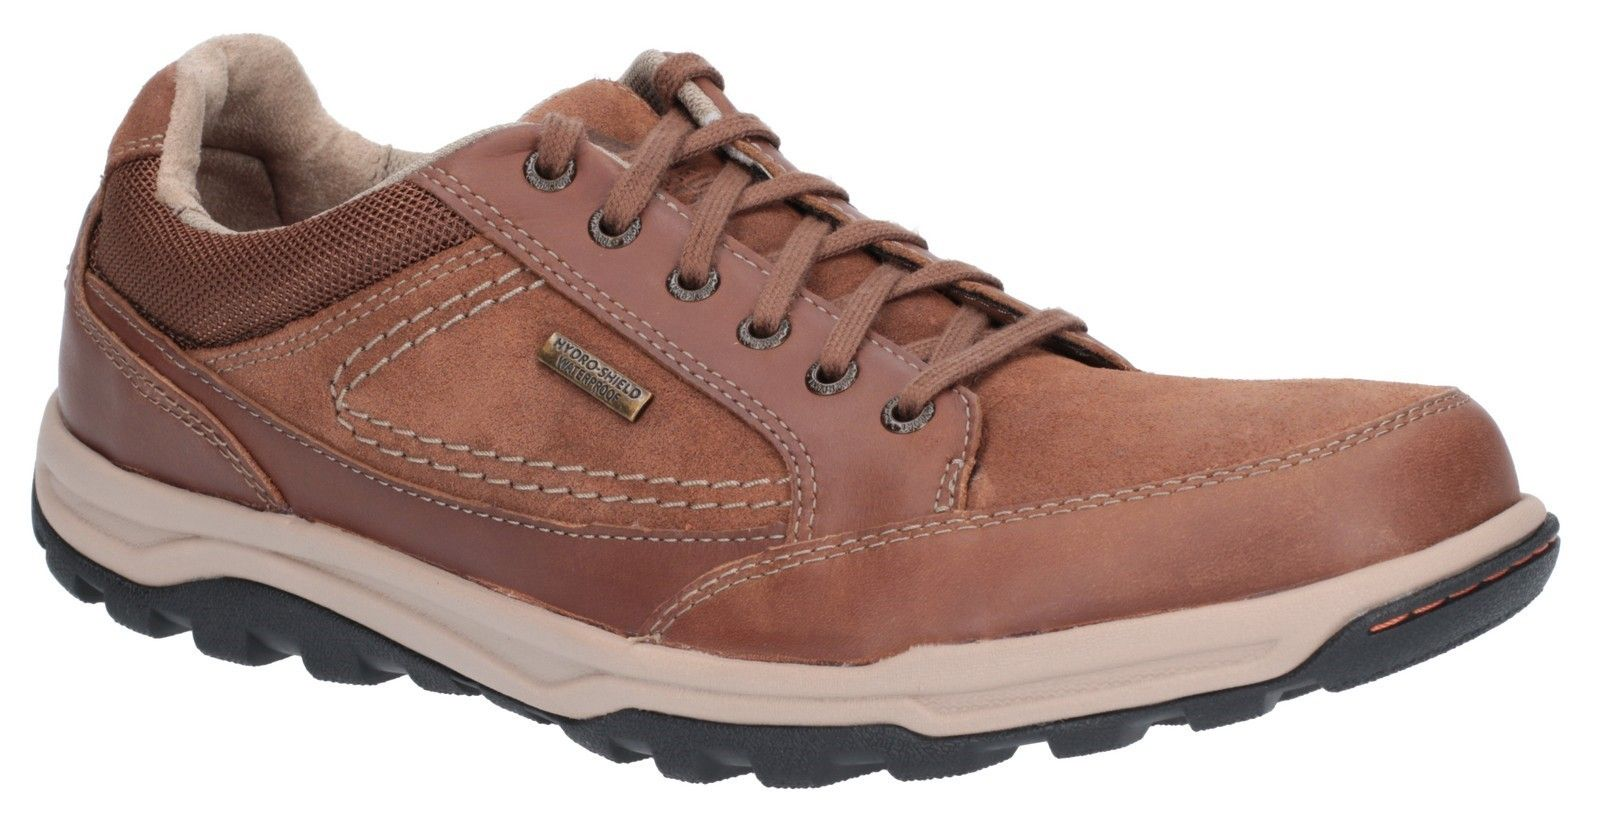 Trail Technique Waterproof Lace up Chukka Boot